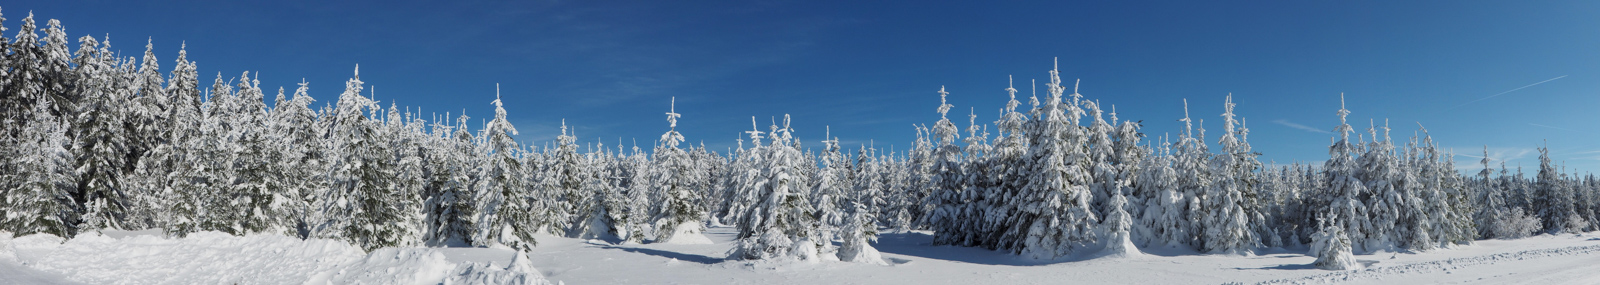 Masserberg_Winter_Pano_2015_2__cs6_479.jpg